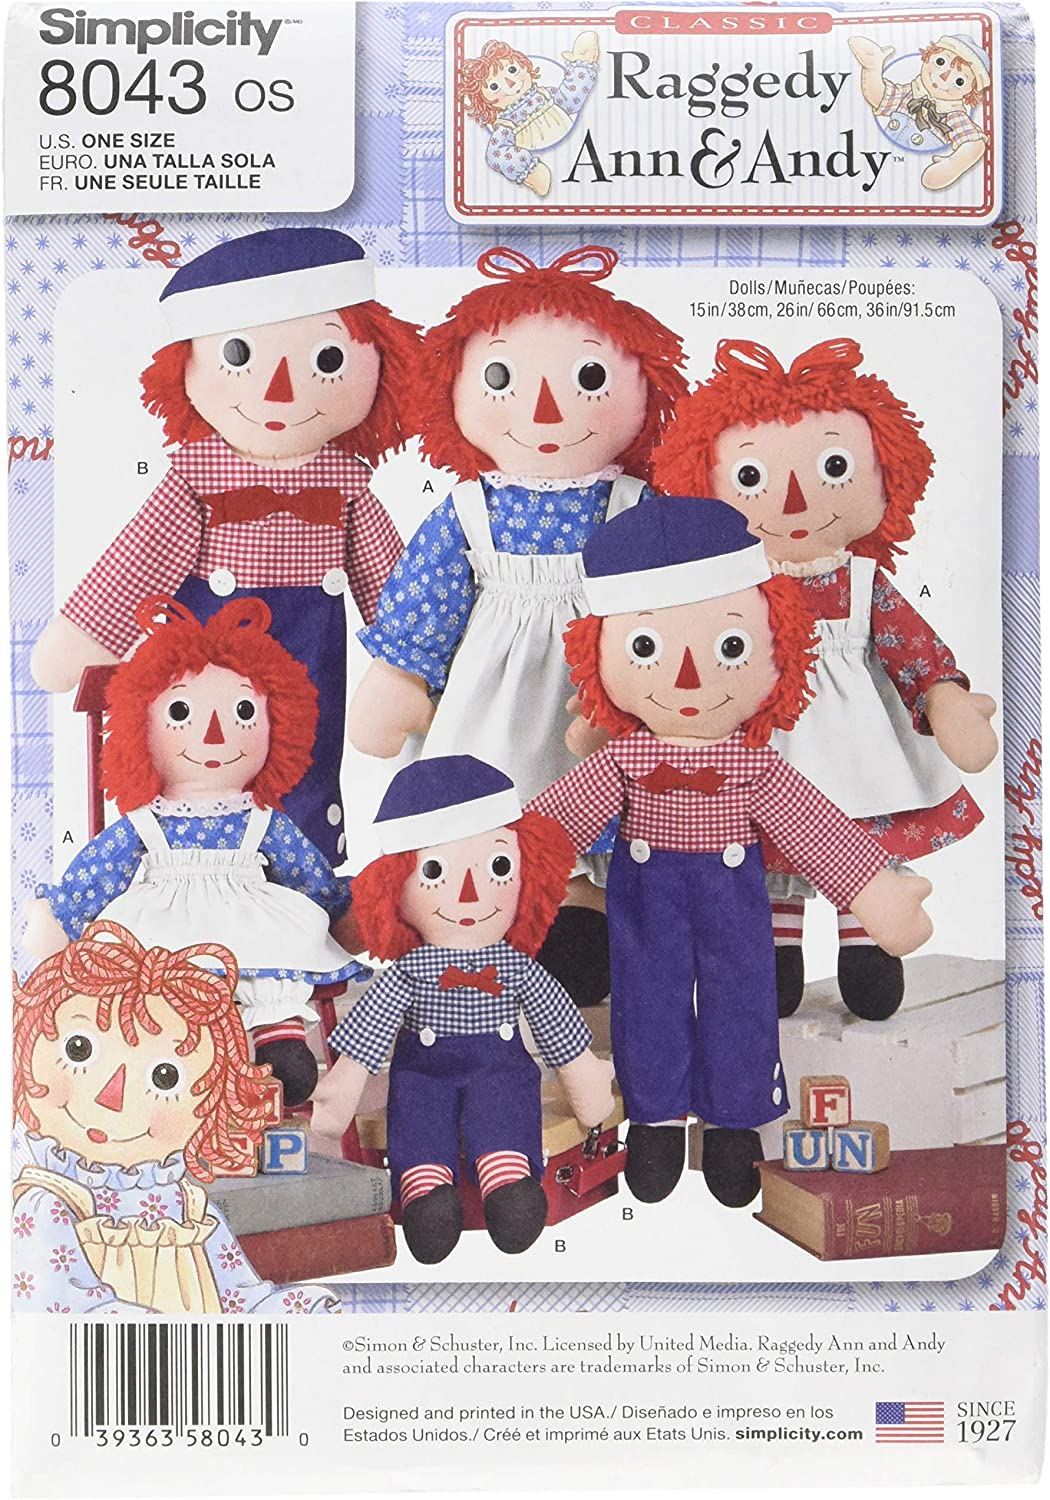 Simplicity Patterns Raggedy Ann & Andy Dolls Size: Os (One Size), 8043